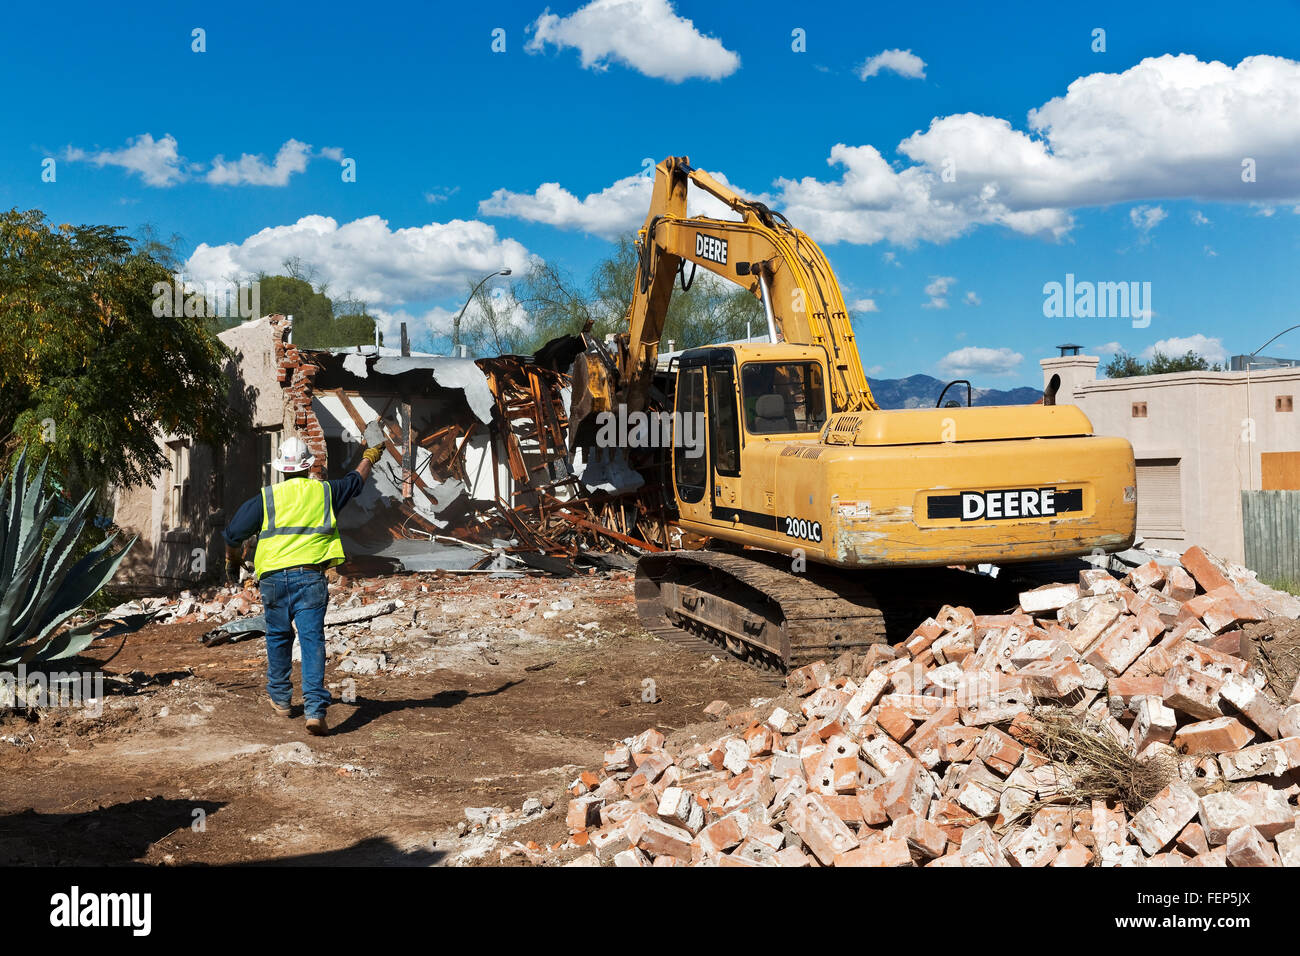 Demolition of a single family home, Tucson, Arizona - Stock Image